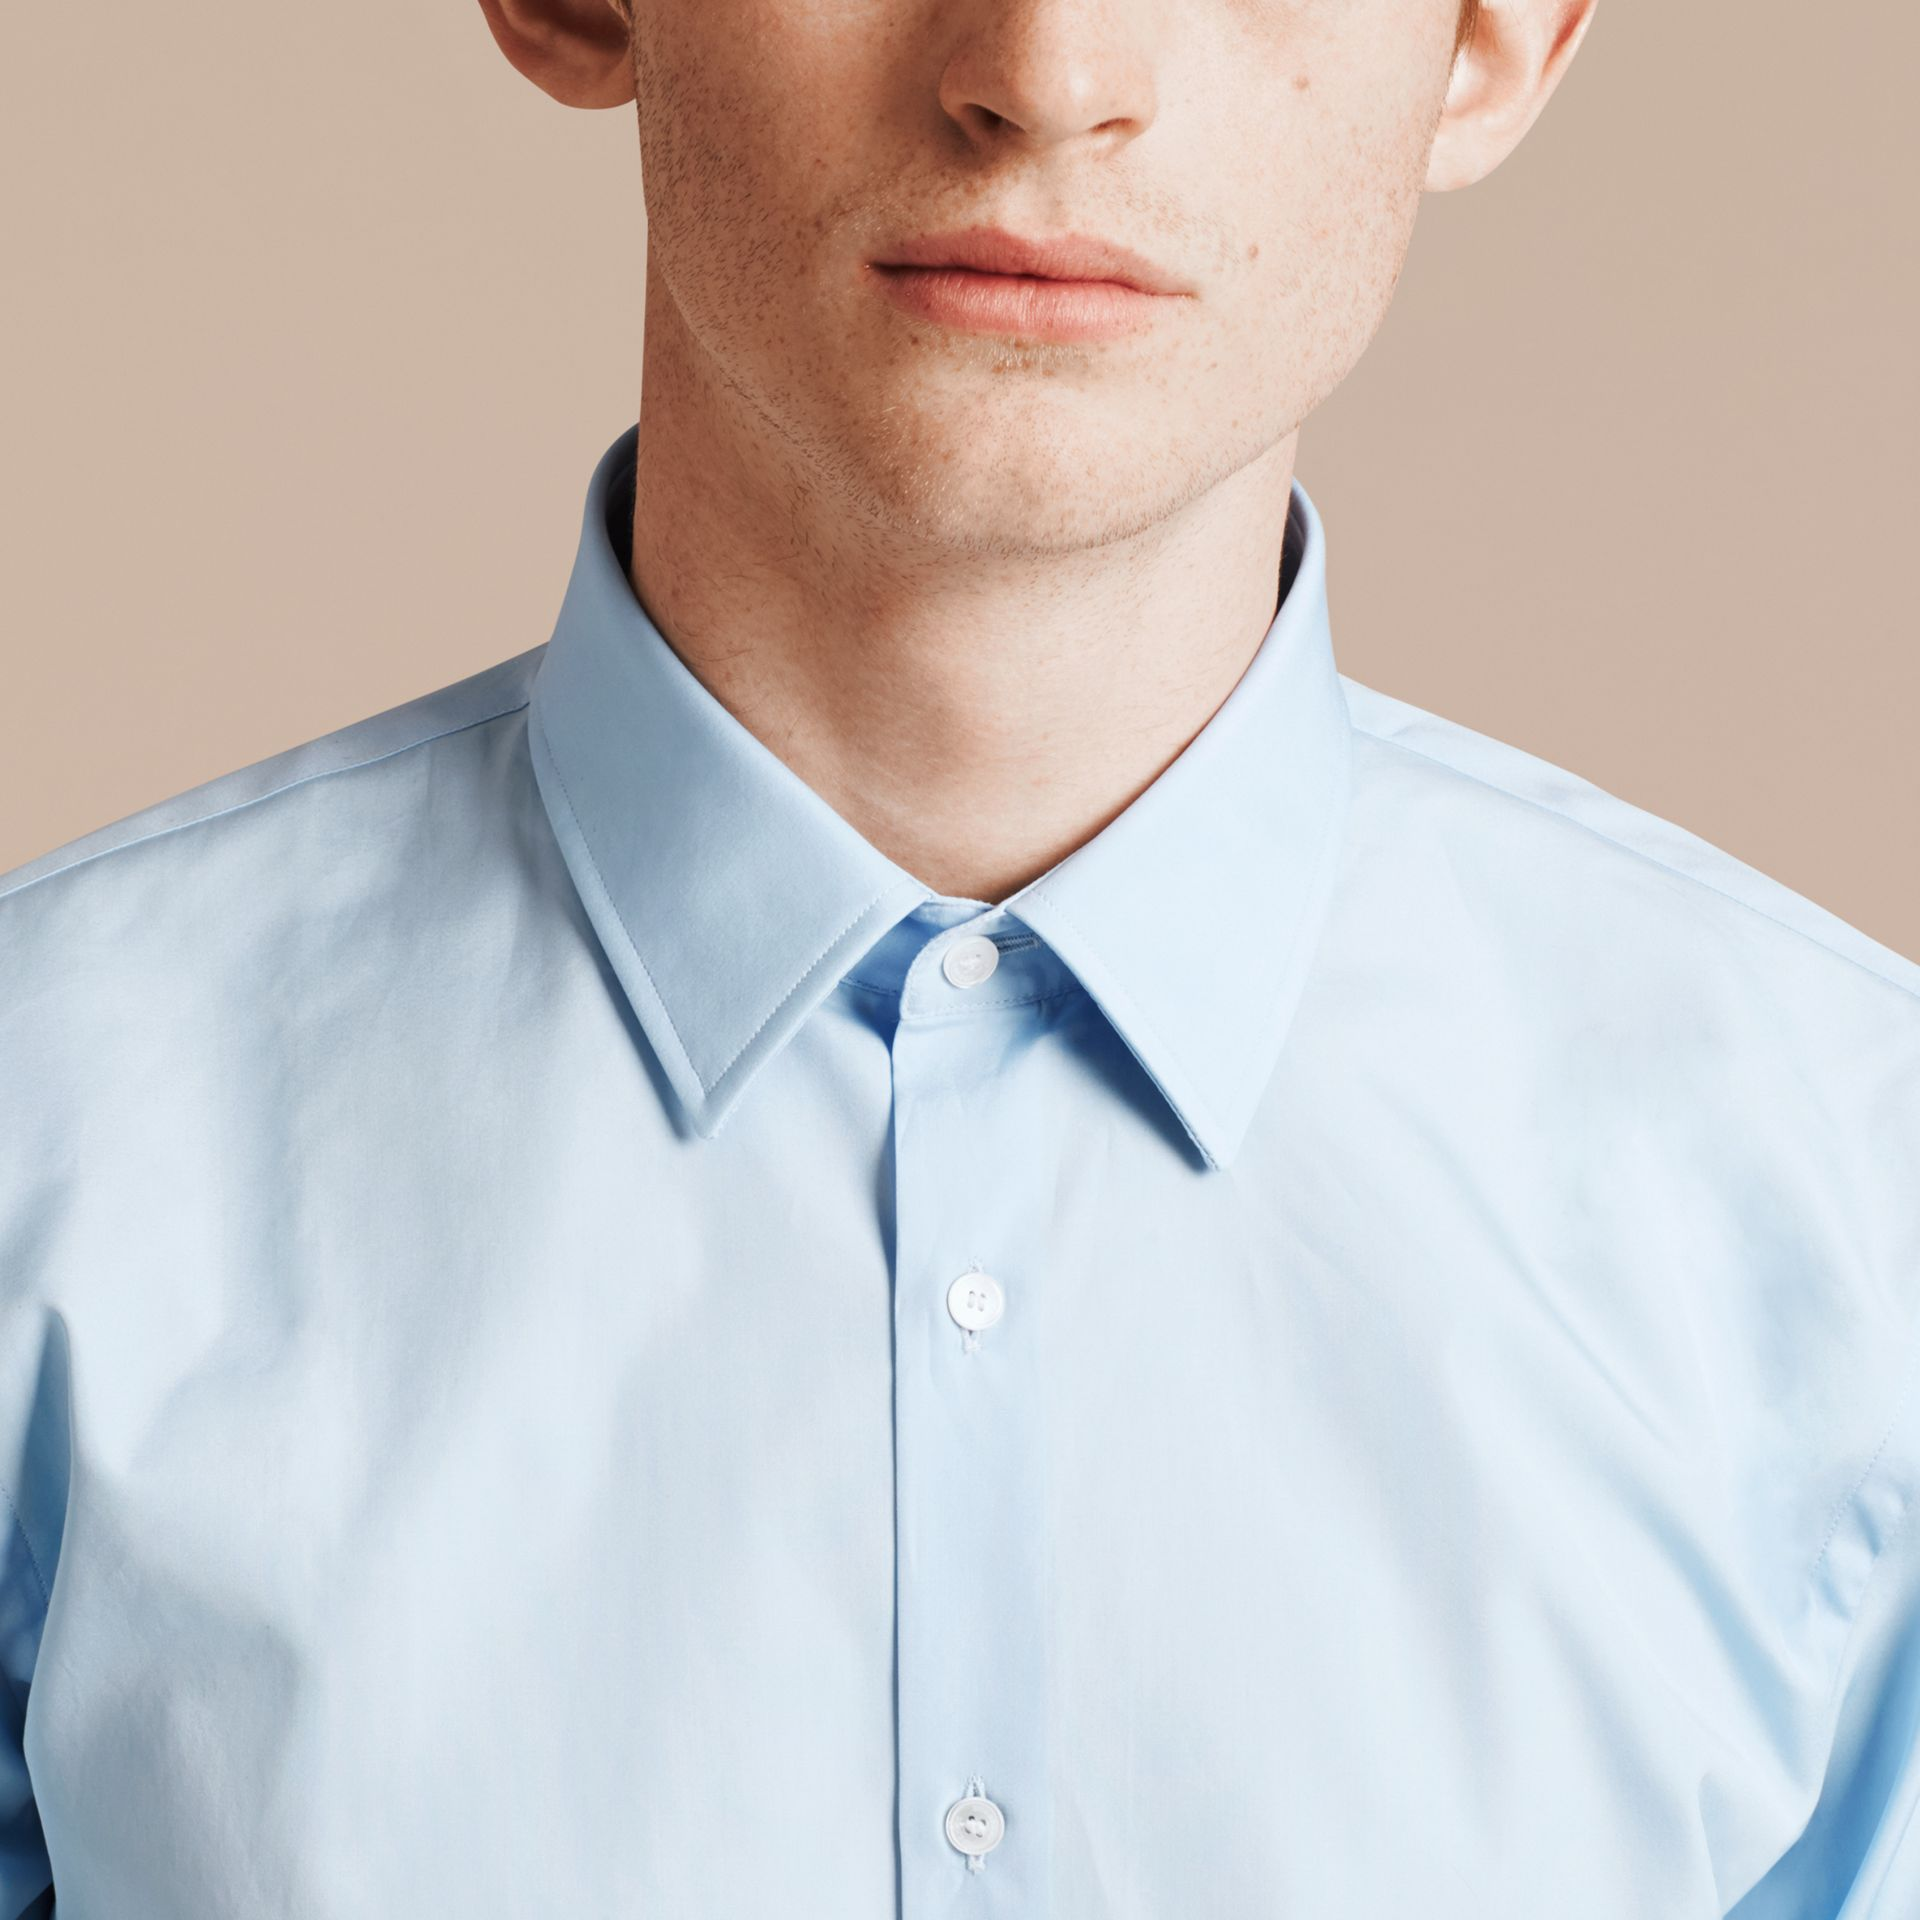 Slim Fit Cotton Poplin Shirt in City Blue - Men | Burberry - gallery image 5